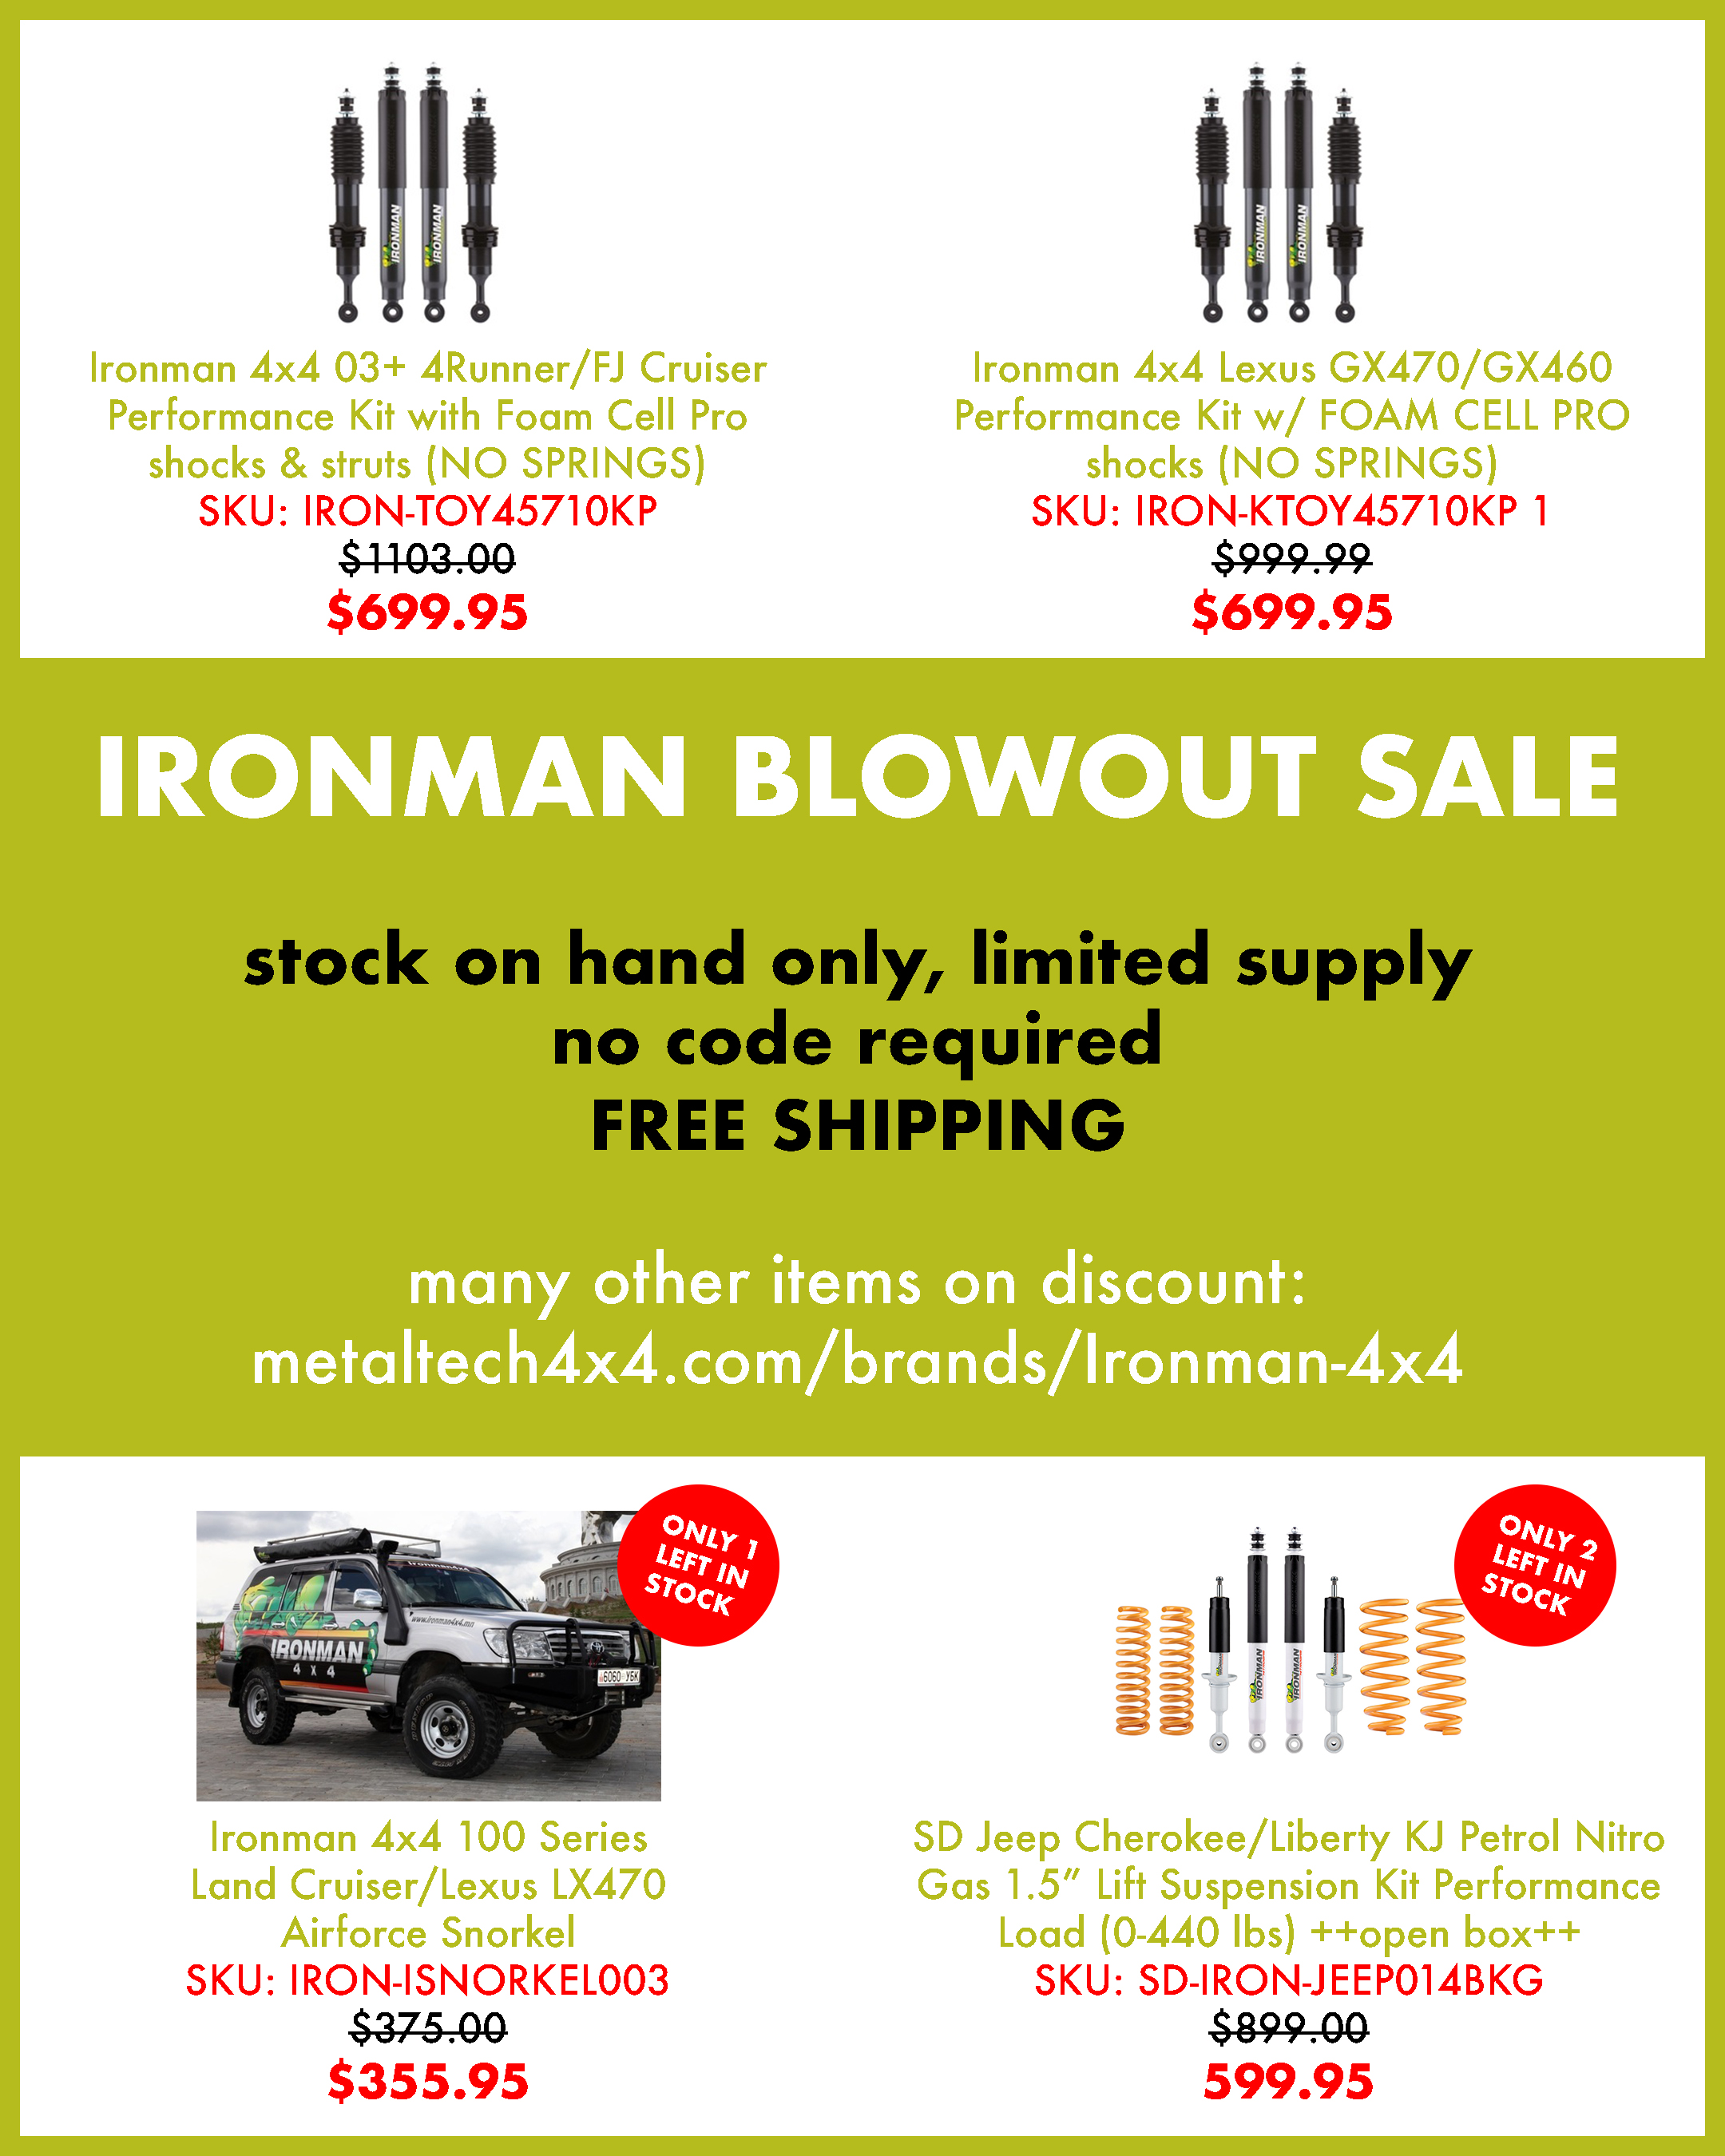 ironman-blowout-sale-updated.jpeg